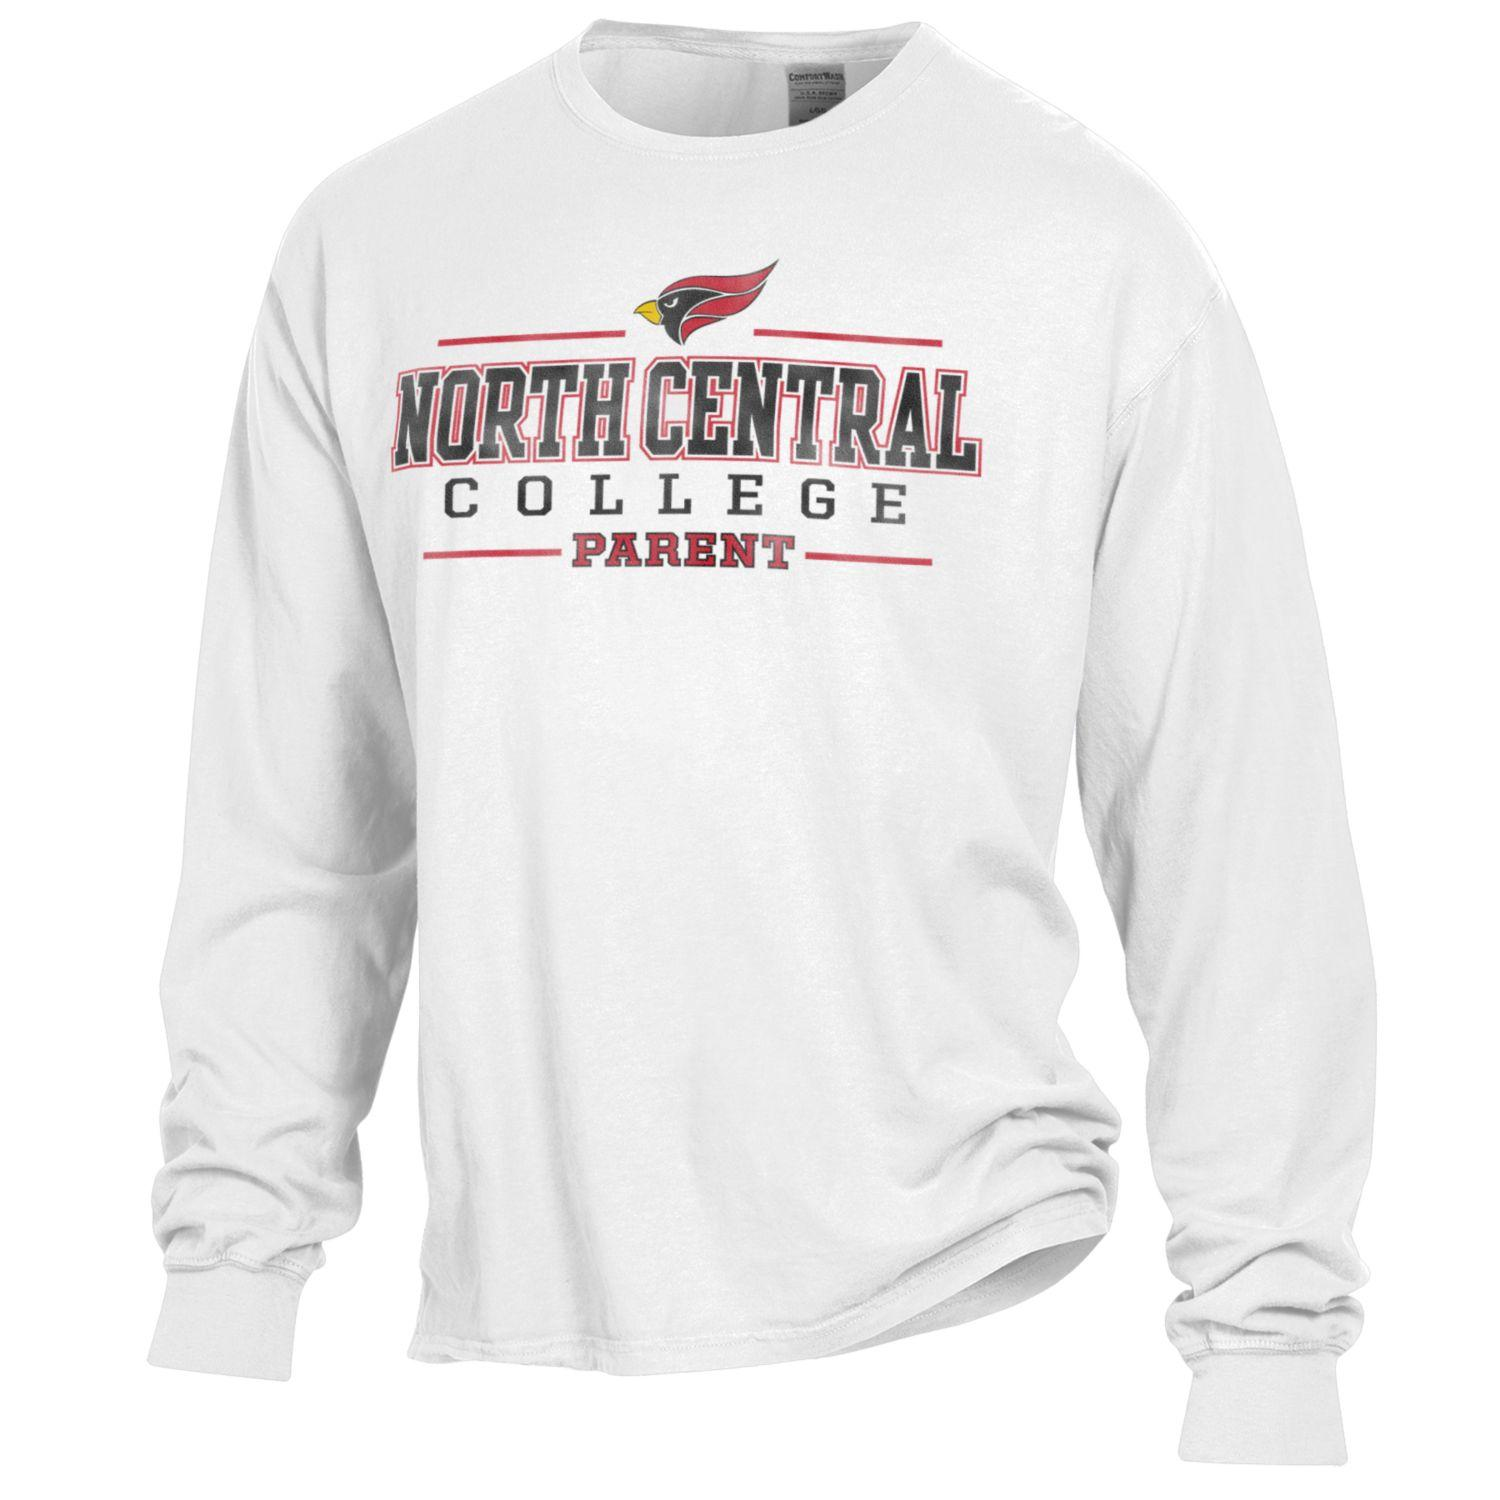 Image for the North Central College Parent Long Sleeve Comfort Wash Tee product